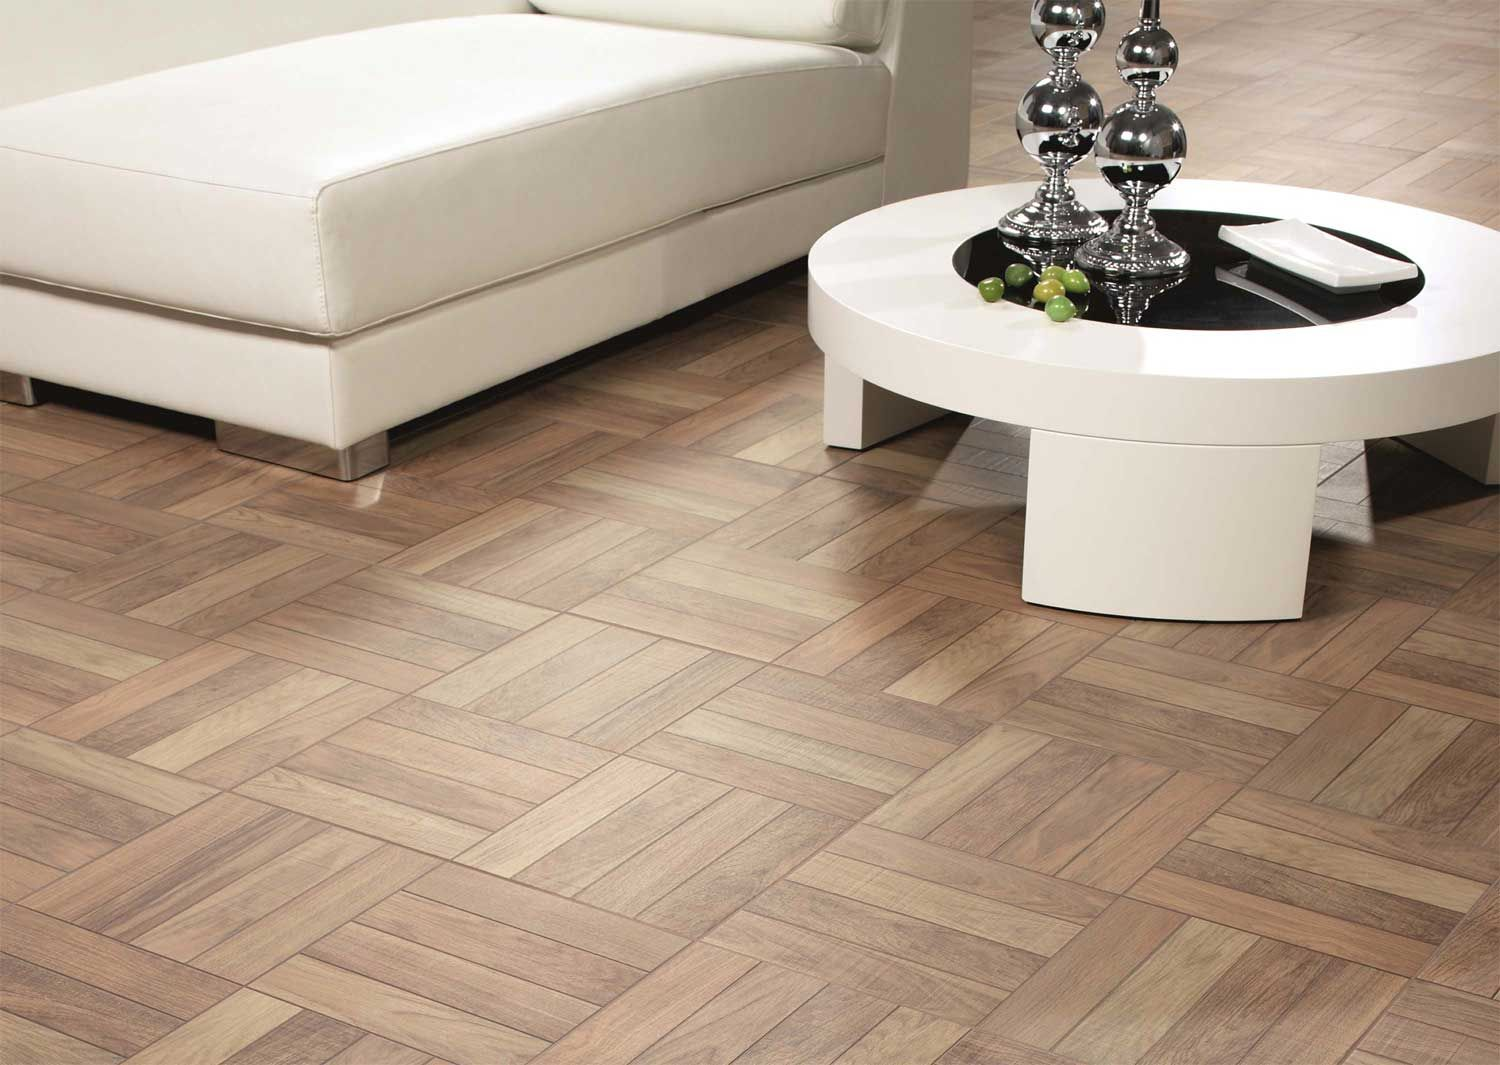 Parquet Mosaique Et Ambiance Moderne Idees Decoration Idees